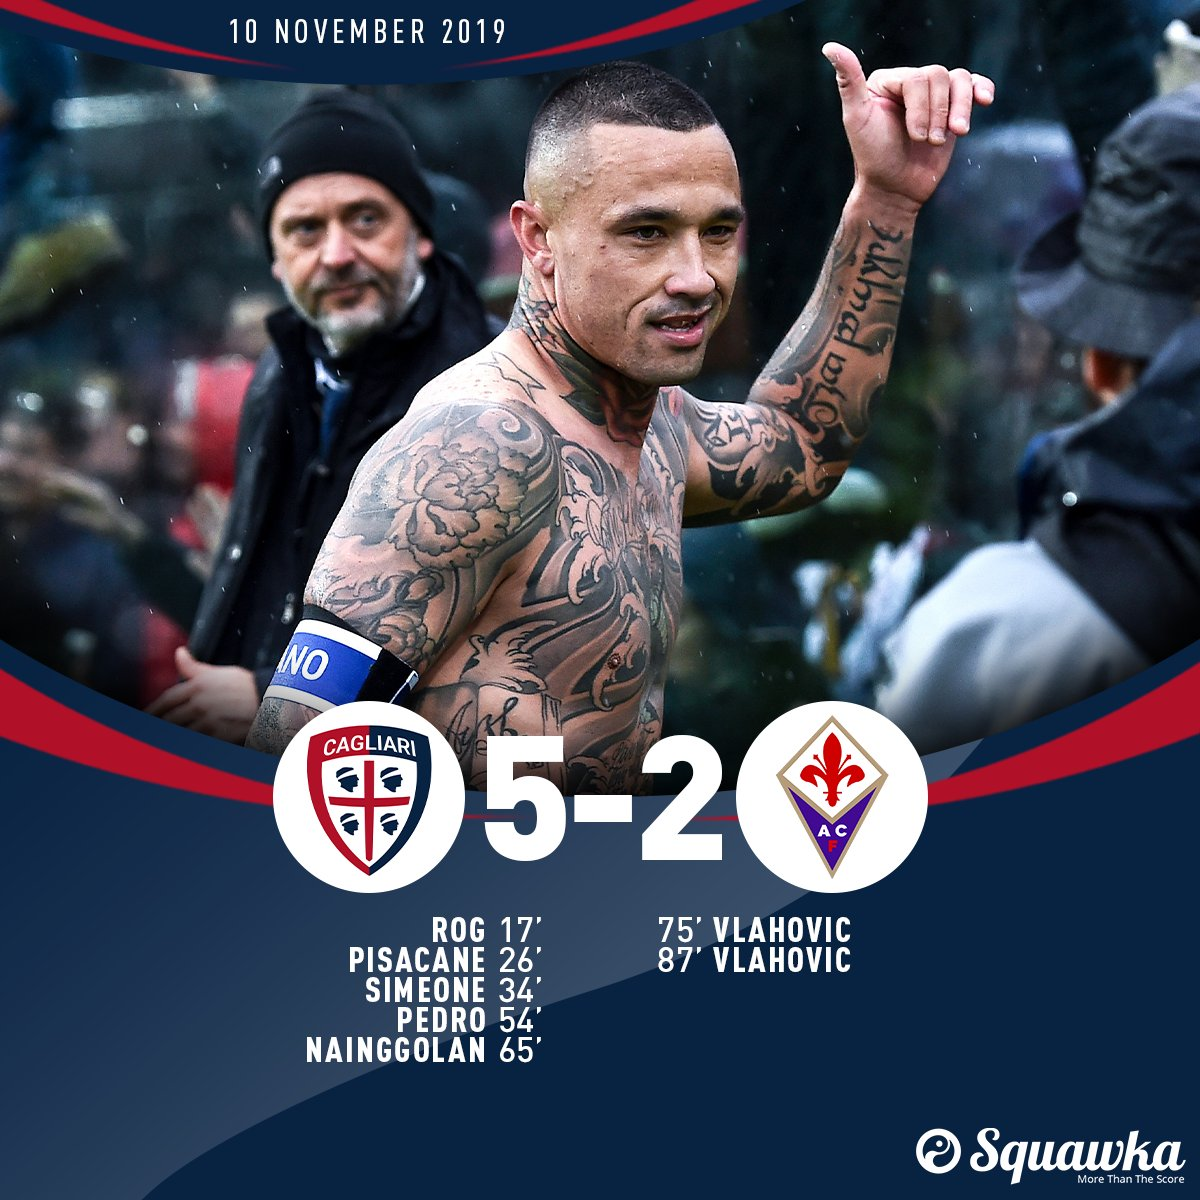 17: Cagliari 1-0 Fiorentina 26: Cagliari 2-0 Fiorentina 34: Cagliari 3-0 Fiorentina 54: Cagliari 4-0 Fiorentina 65: Cagliari 5-0 Fiorentina 75: Cagliari 5-1 Fiorentina 87: Cagliari 5-2 Fiorentina More superb Serie A football. The Islanders move up to third.